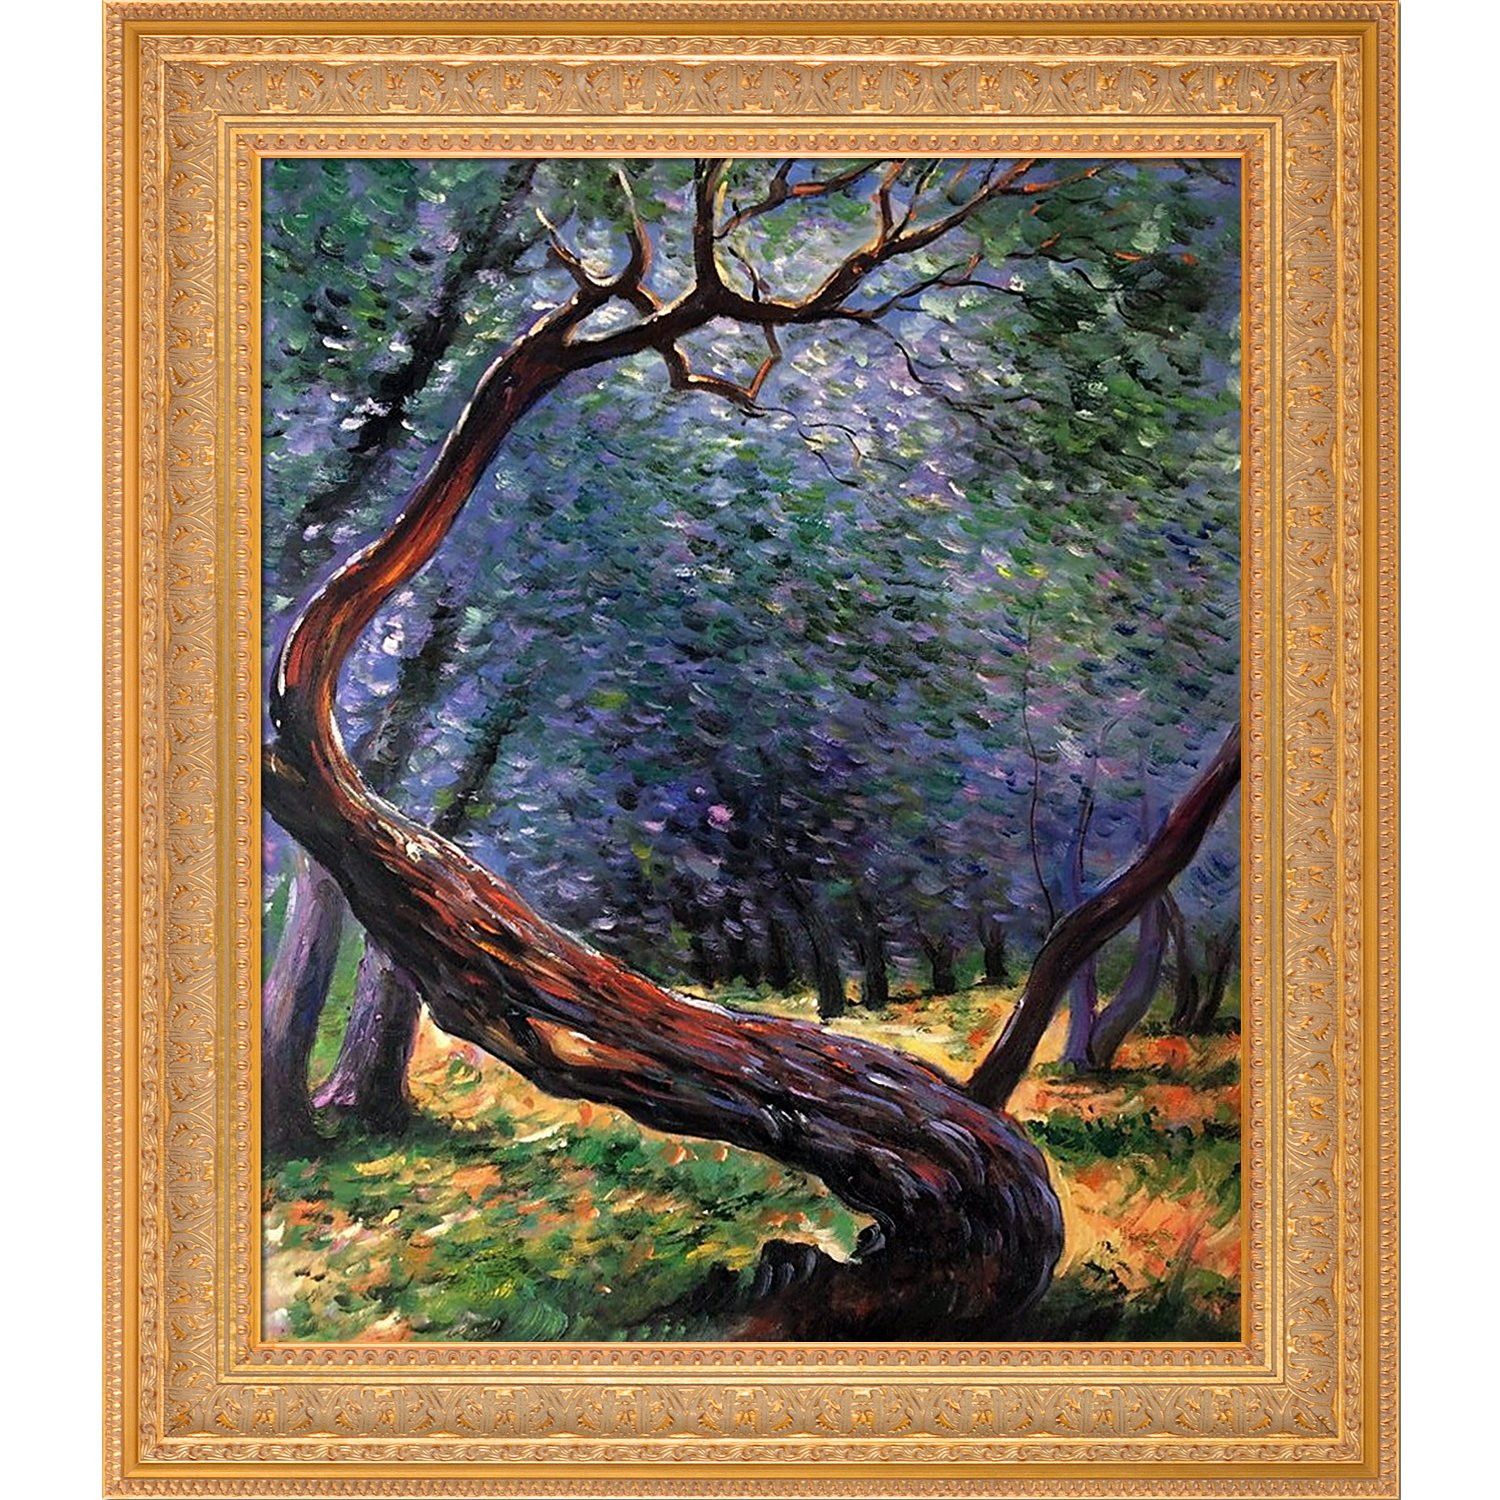 overstockArt Study by Claude Monet Framed Hand Painted Oil on Canvas MON4251-FR-820920X24